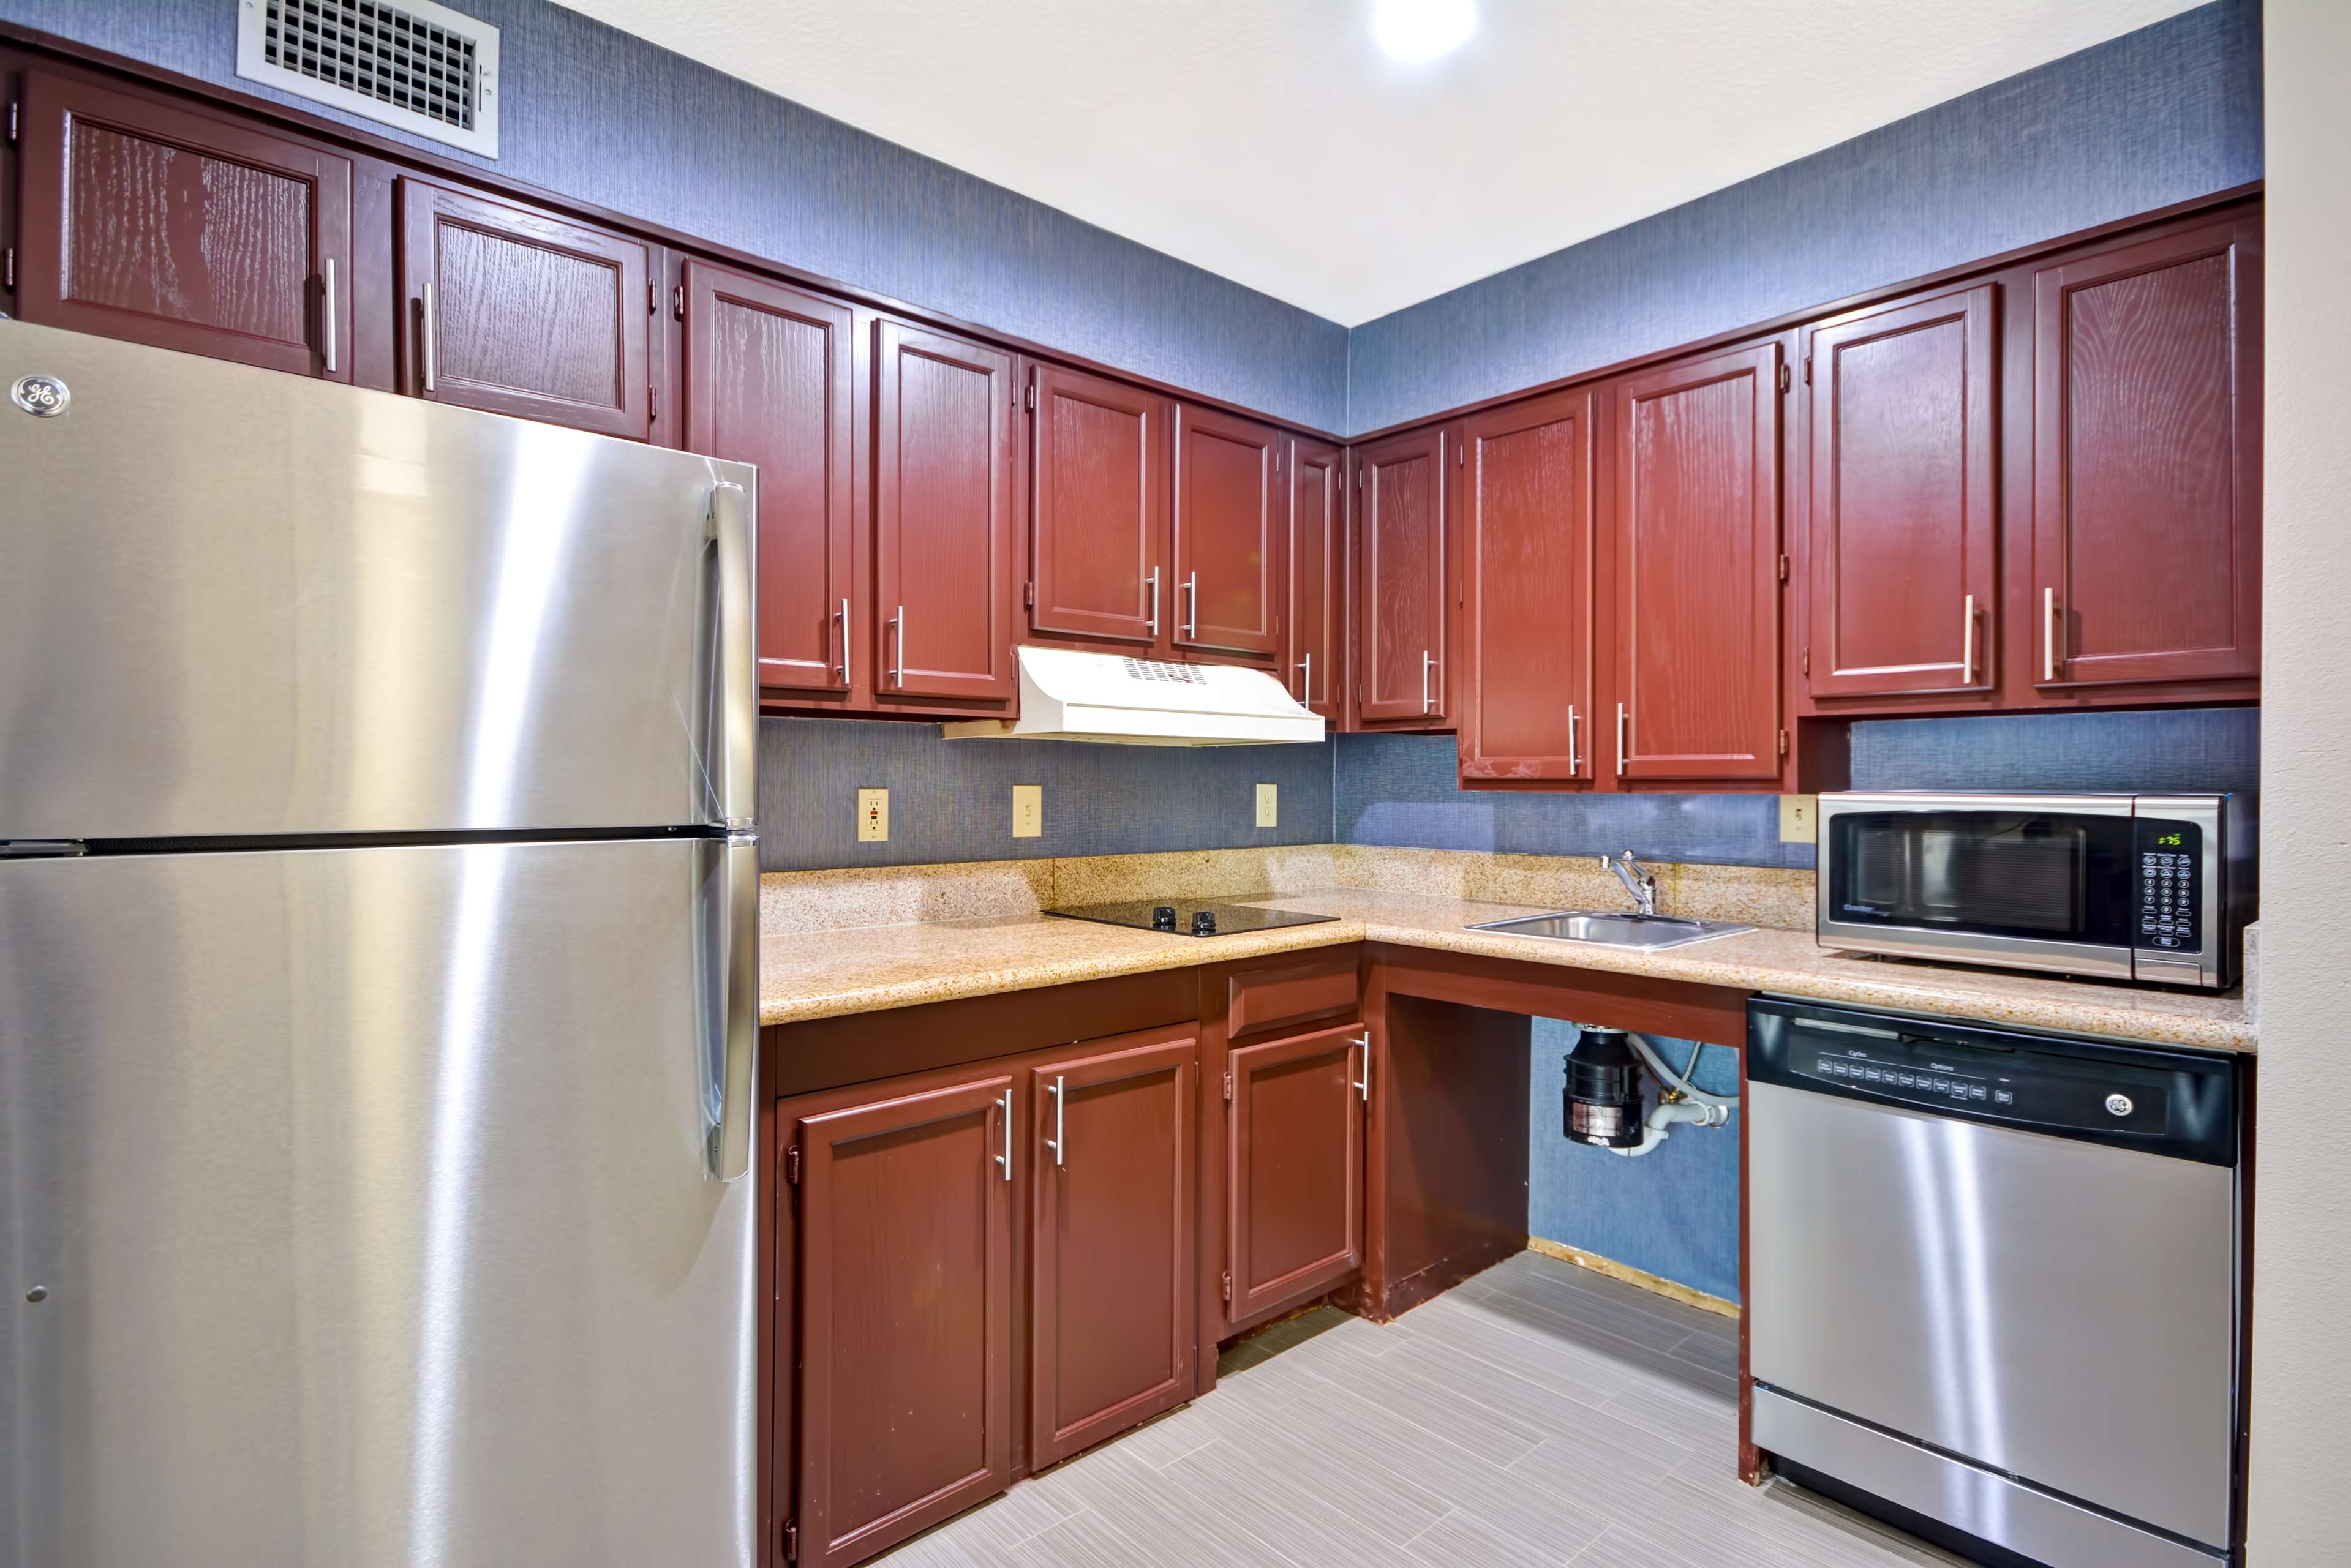 Homewood Suites by Hilton Dallas-Lewisville image 34